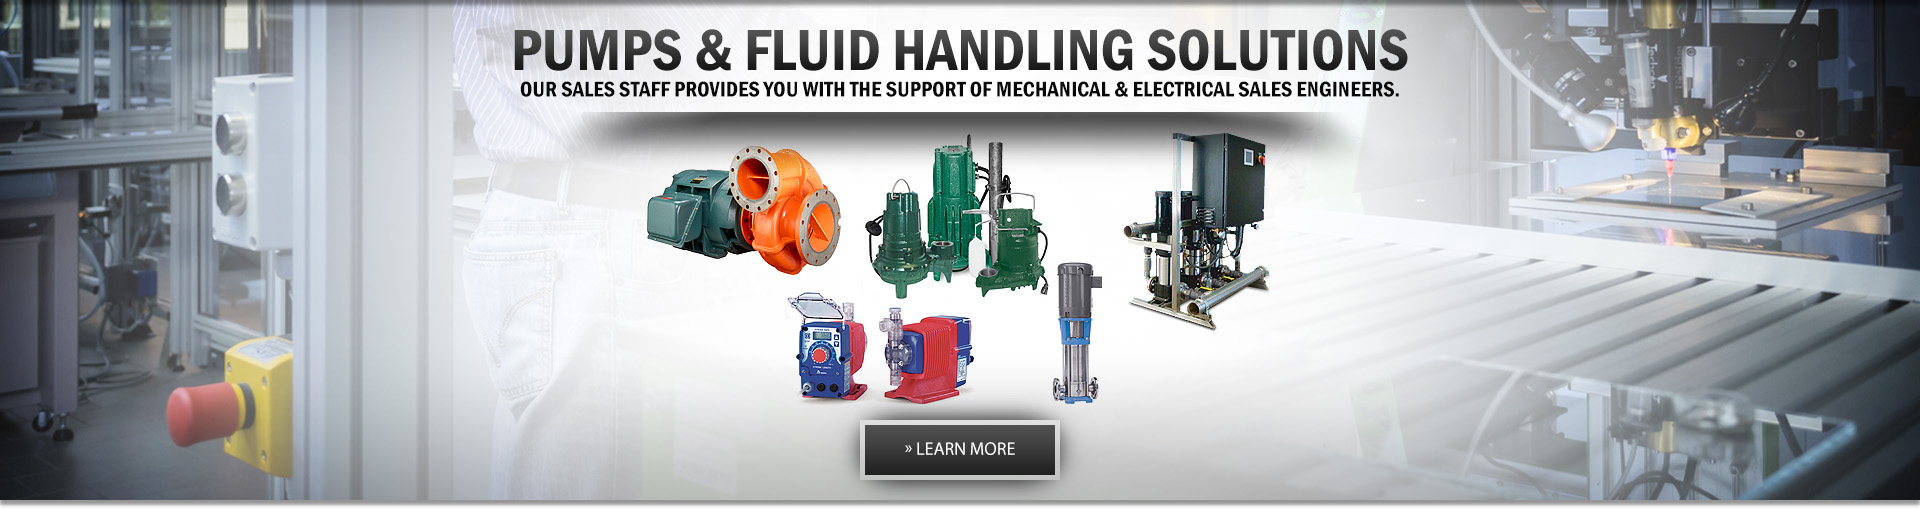 Pumps-Fluid-Handling-Solutions